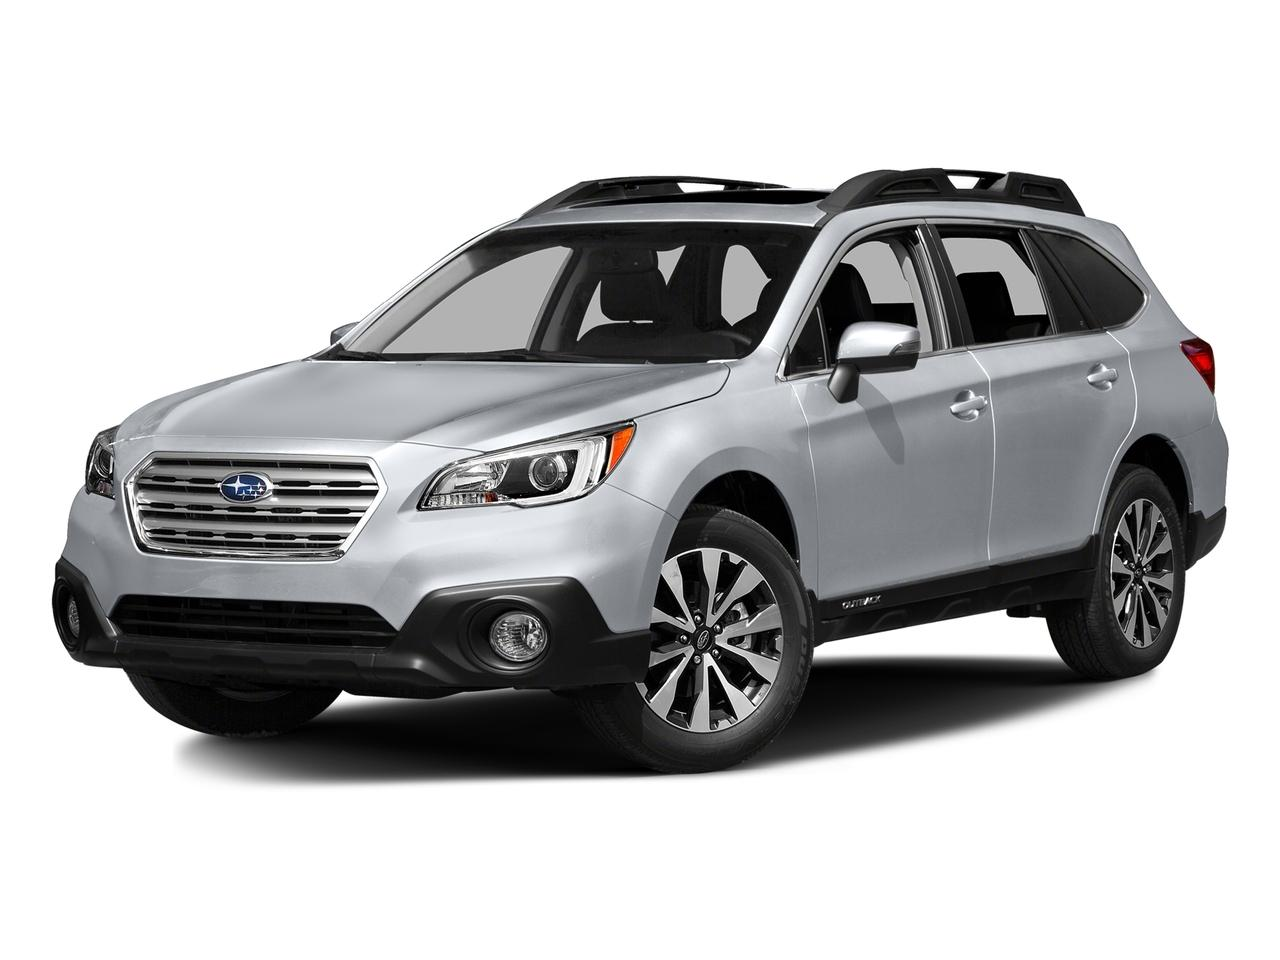 2016 Subaru Outback Vehicle Photo in Plainfield, IL 60586